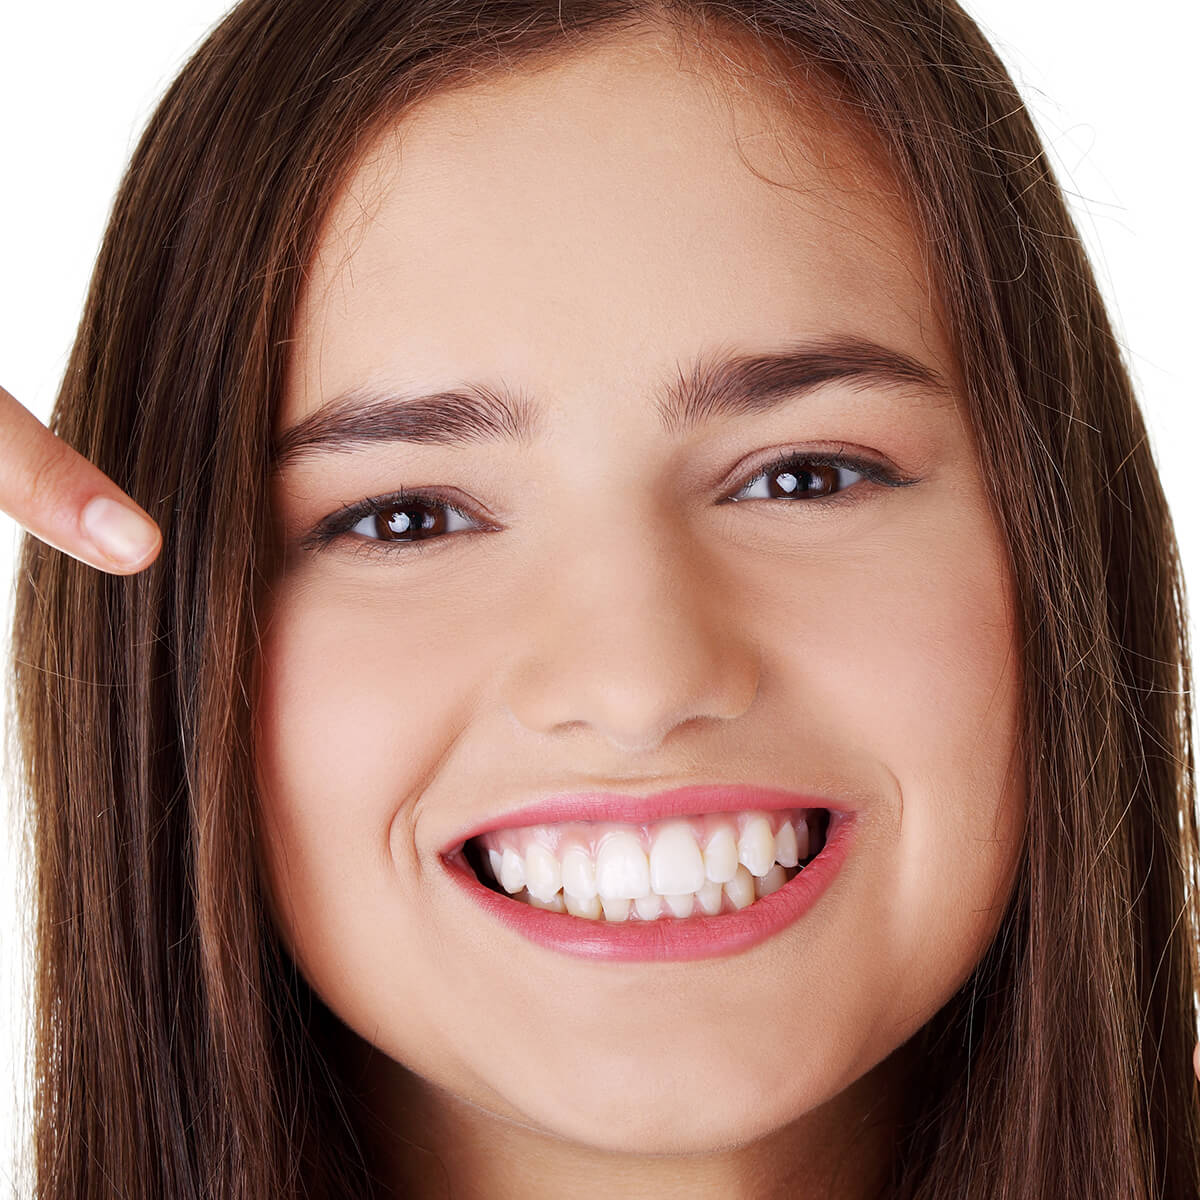 Most Frequently Asked Questions on Replacing Missing Teeth in El Dorado AR Area